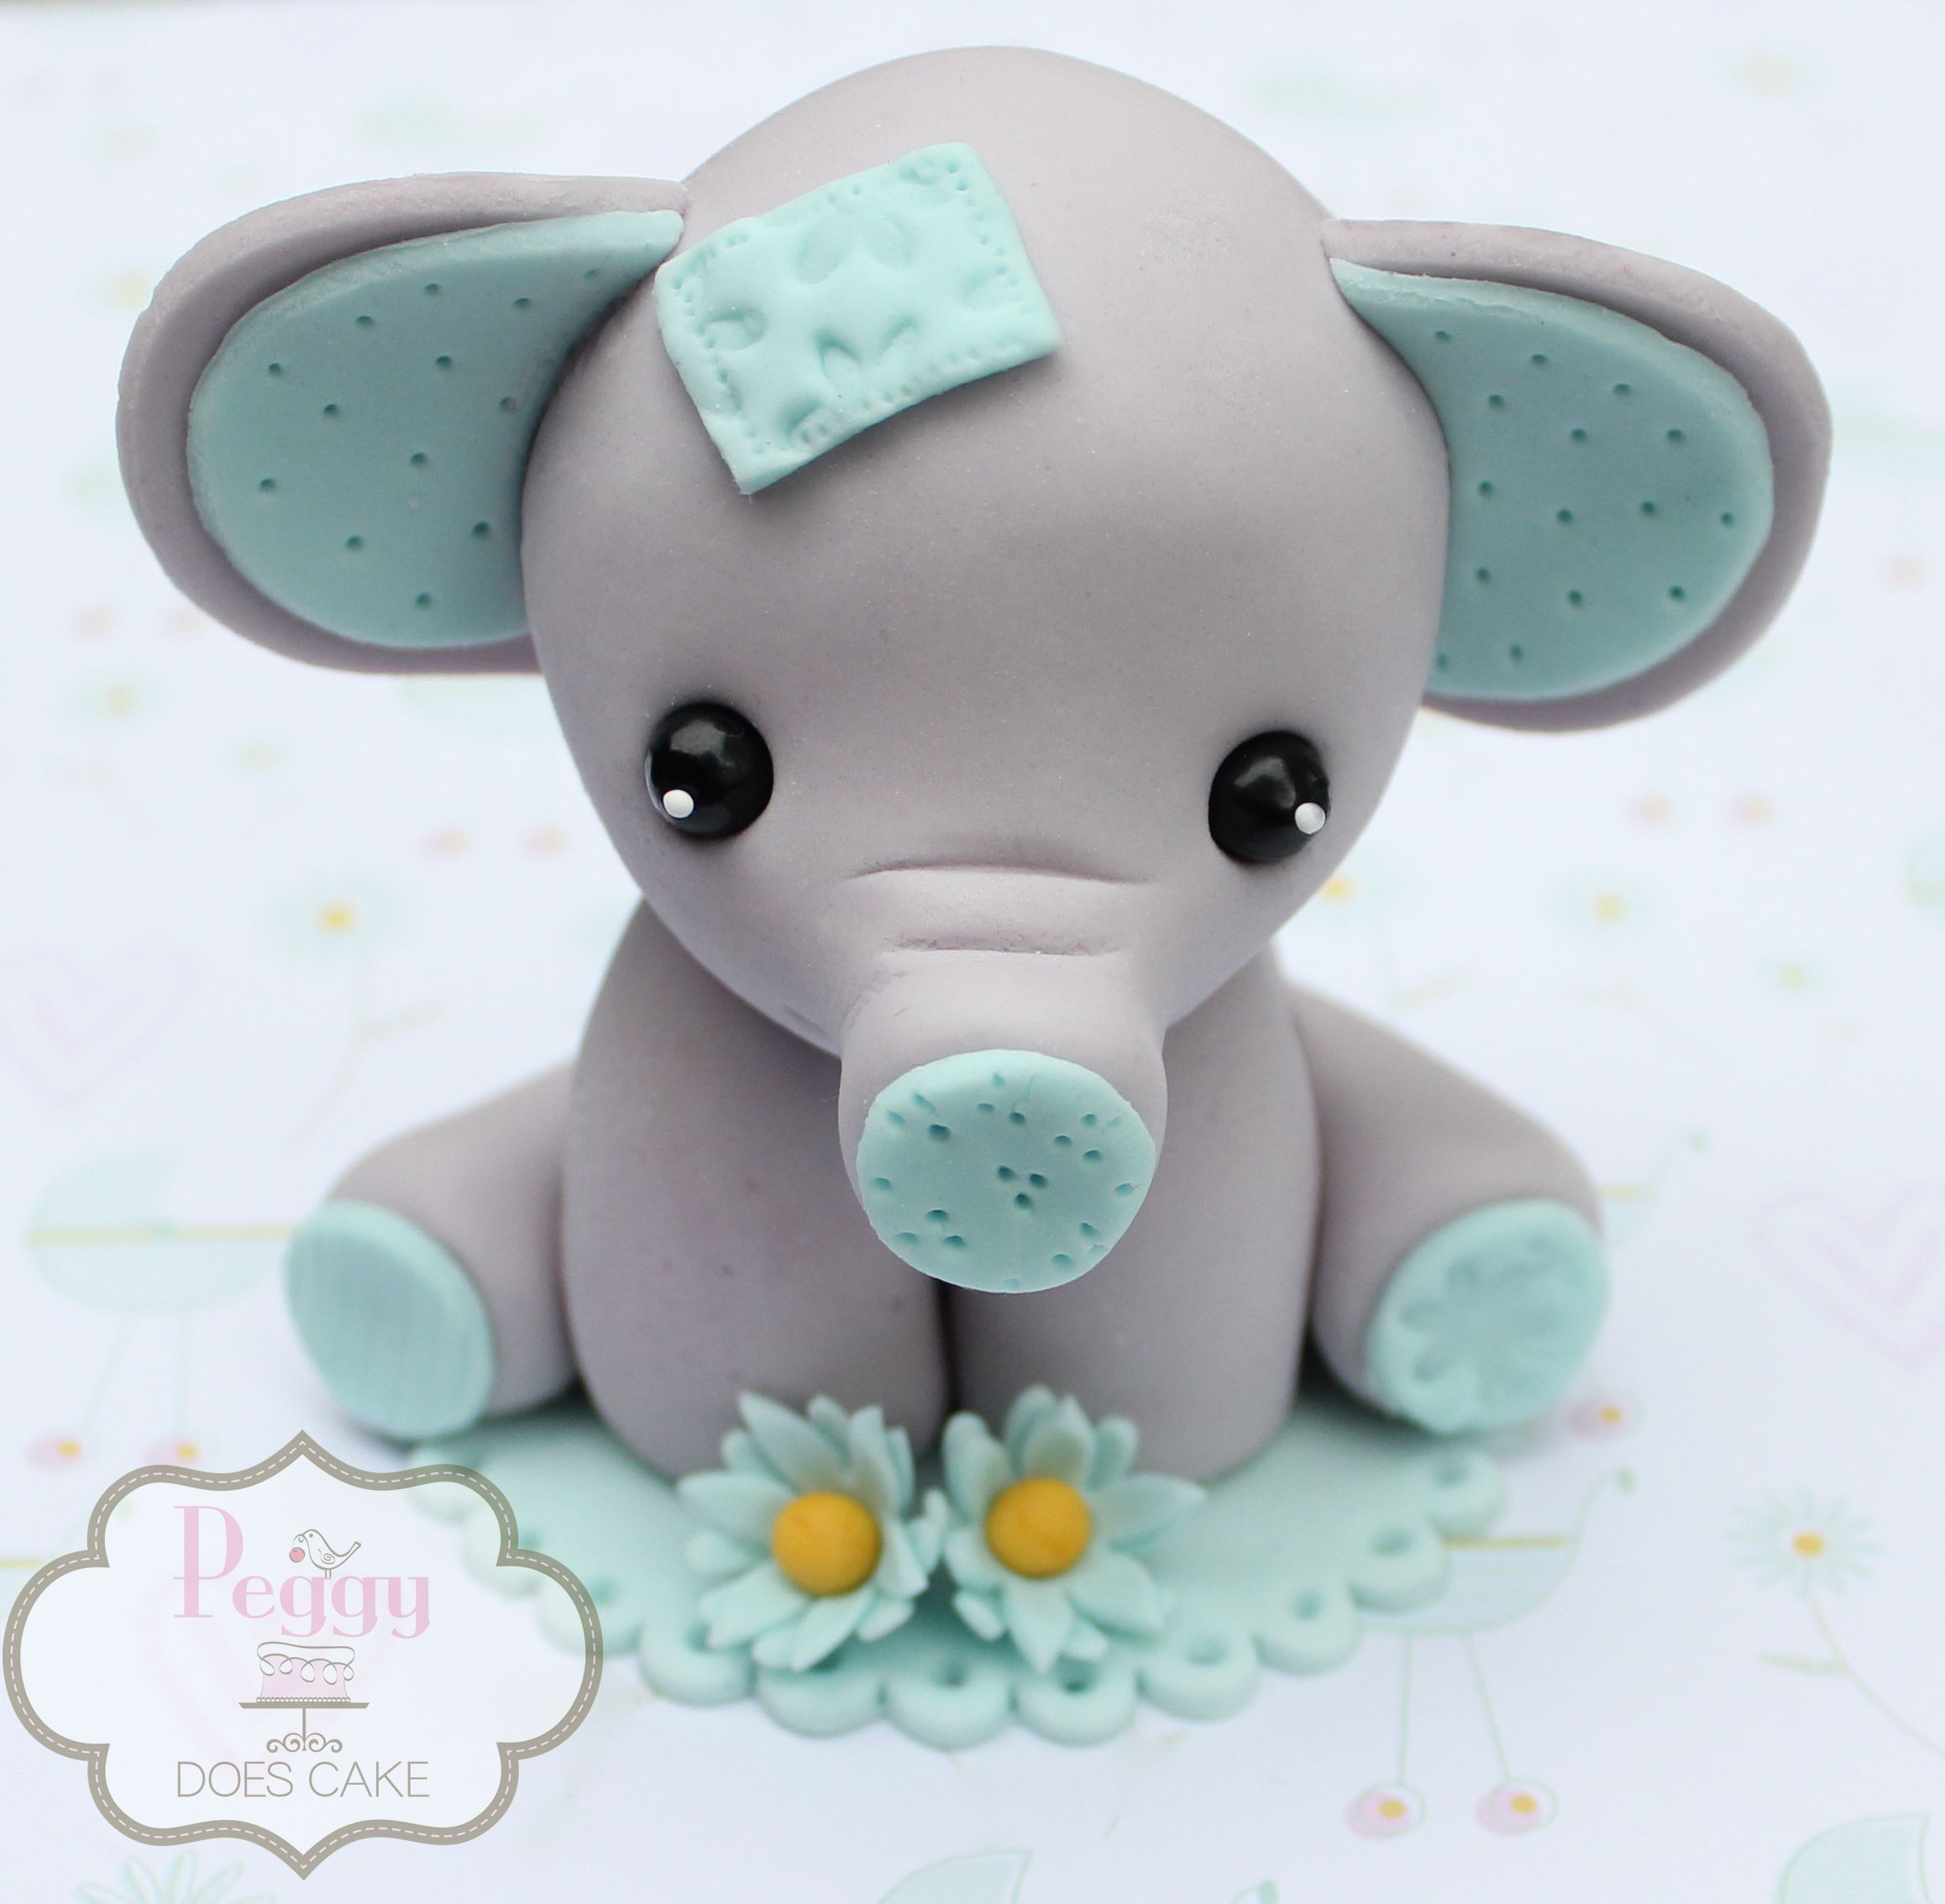 Cake Toppers On Fondant : Fondant elephant cake topper.  Peggy Does Cake  Cakes ...